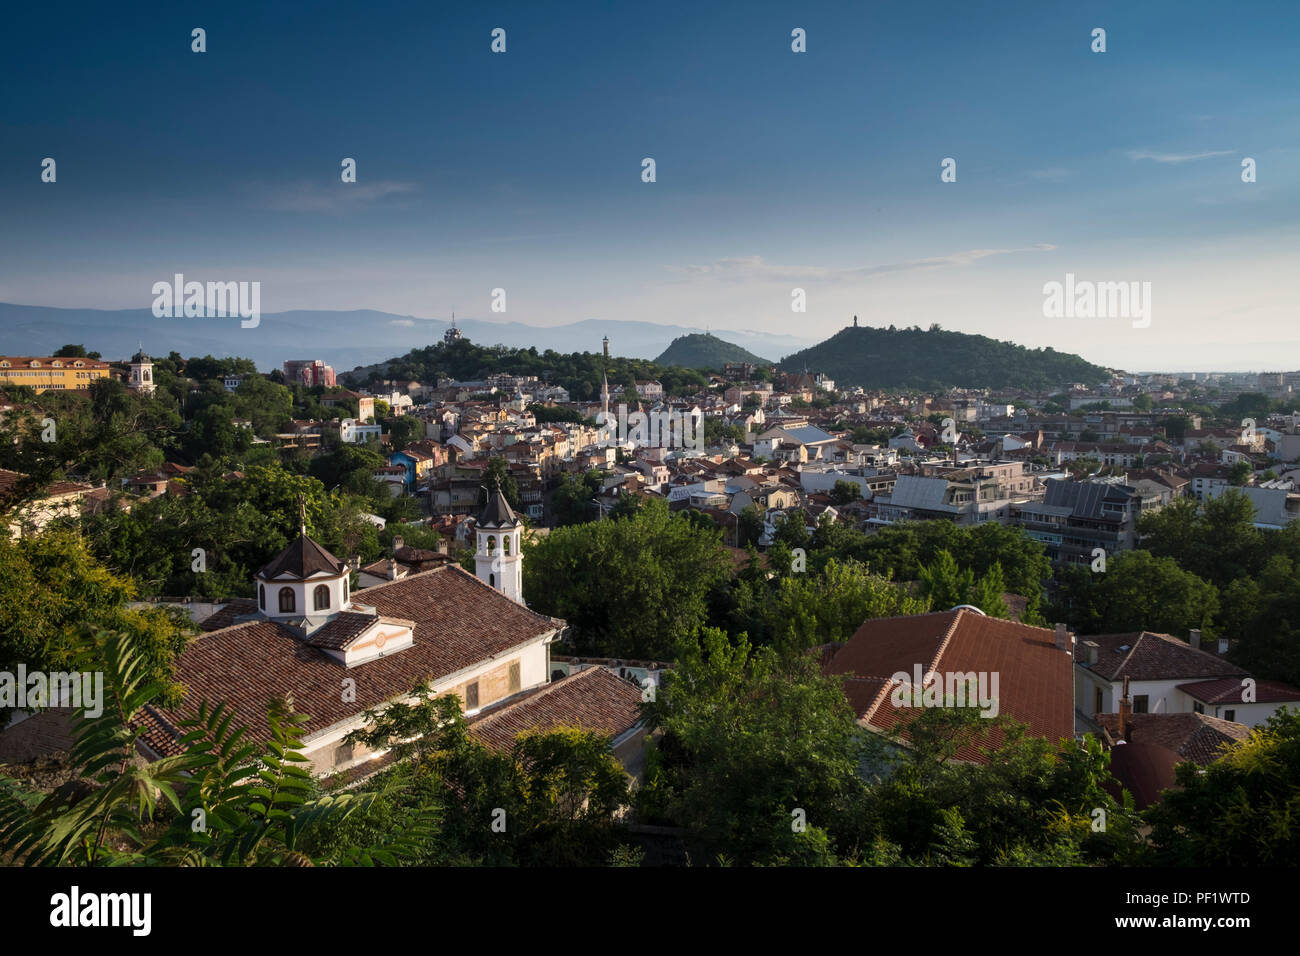 A view over the old town of Plovdiv, Bulgaria's second largest city. The city will be European Capital of Culture in 2019. Stock Photo